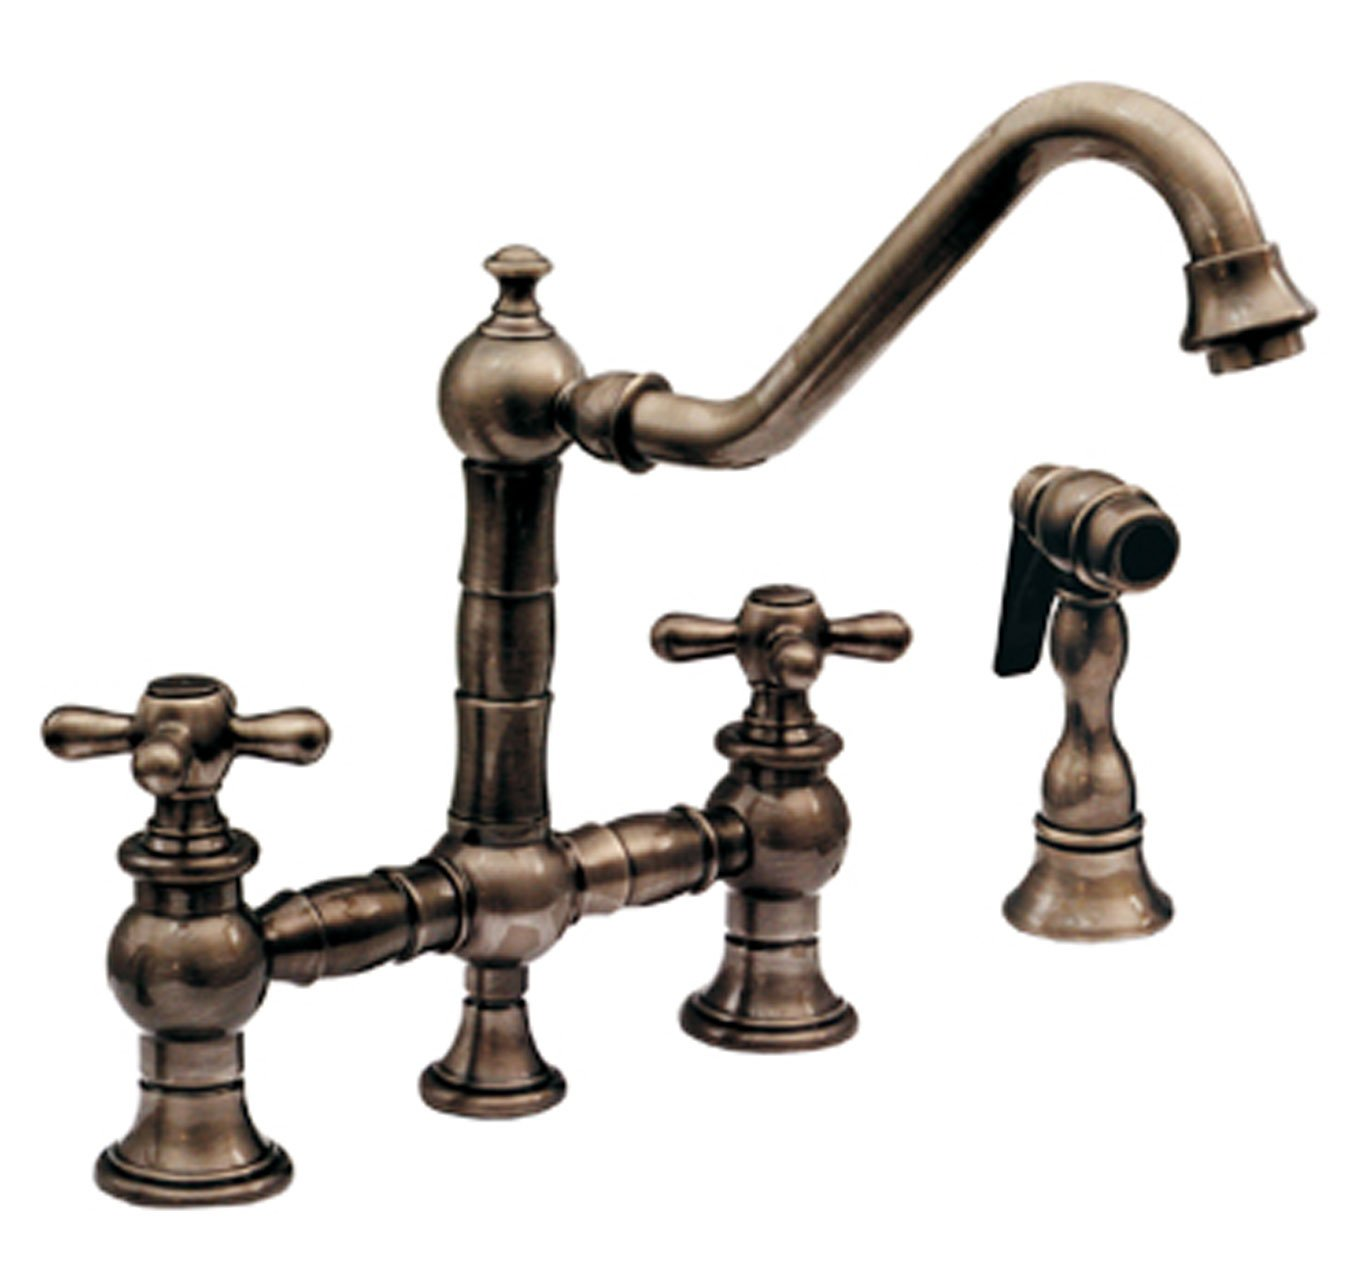 Whitehaus whkbtcr3 9201 ab vintage iii kitchen bridge faucet with long traditional swivel spout cross handles and matching side spray touch on kitchen